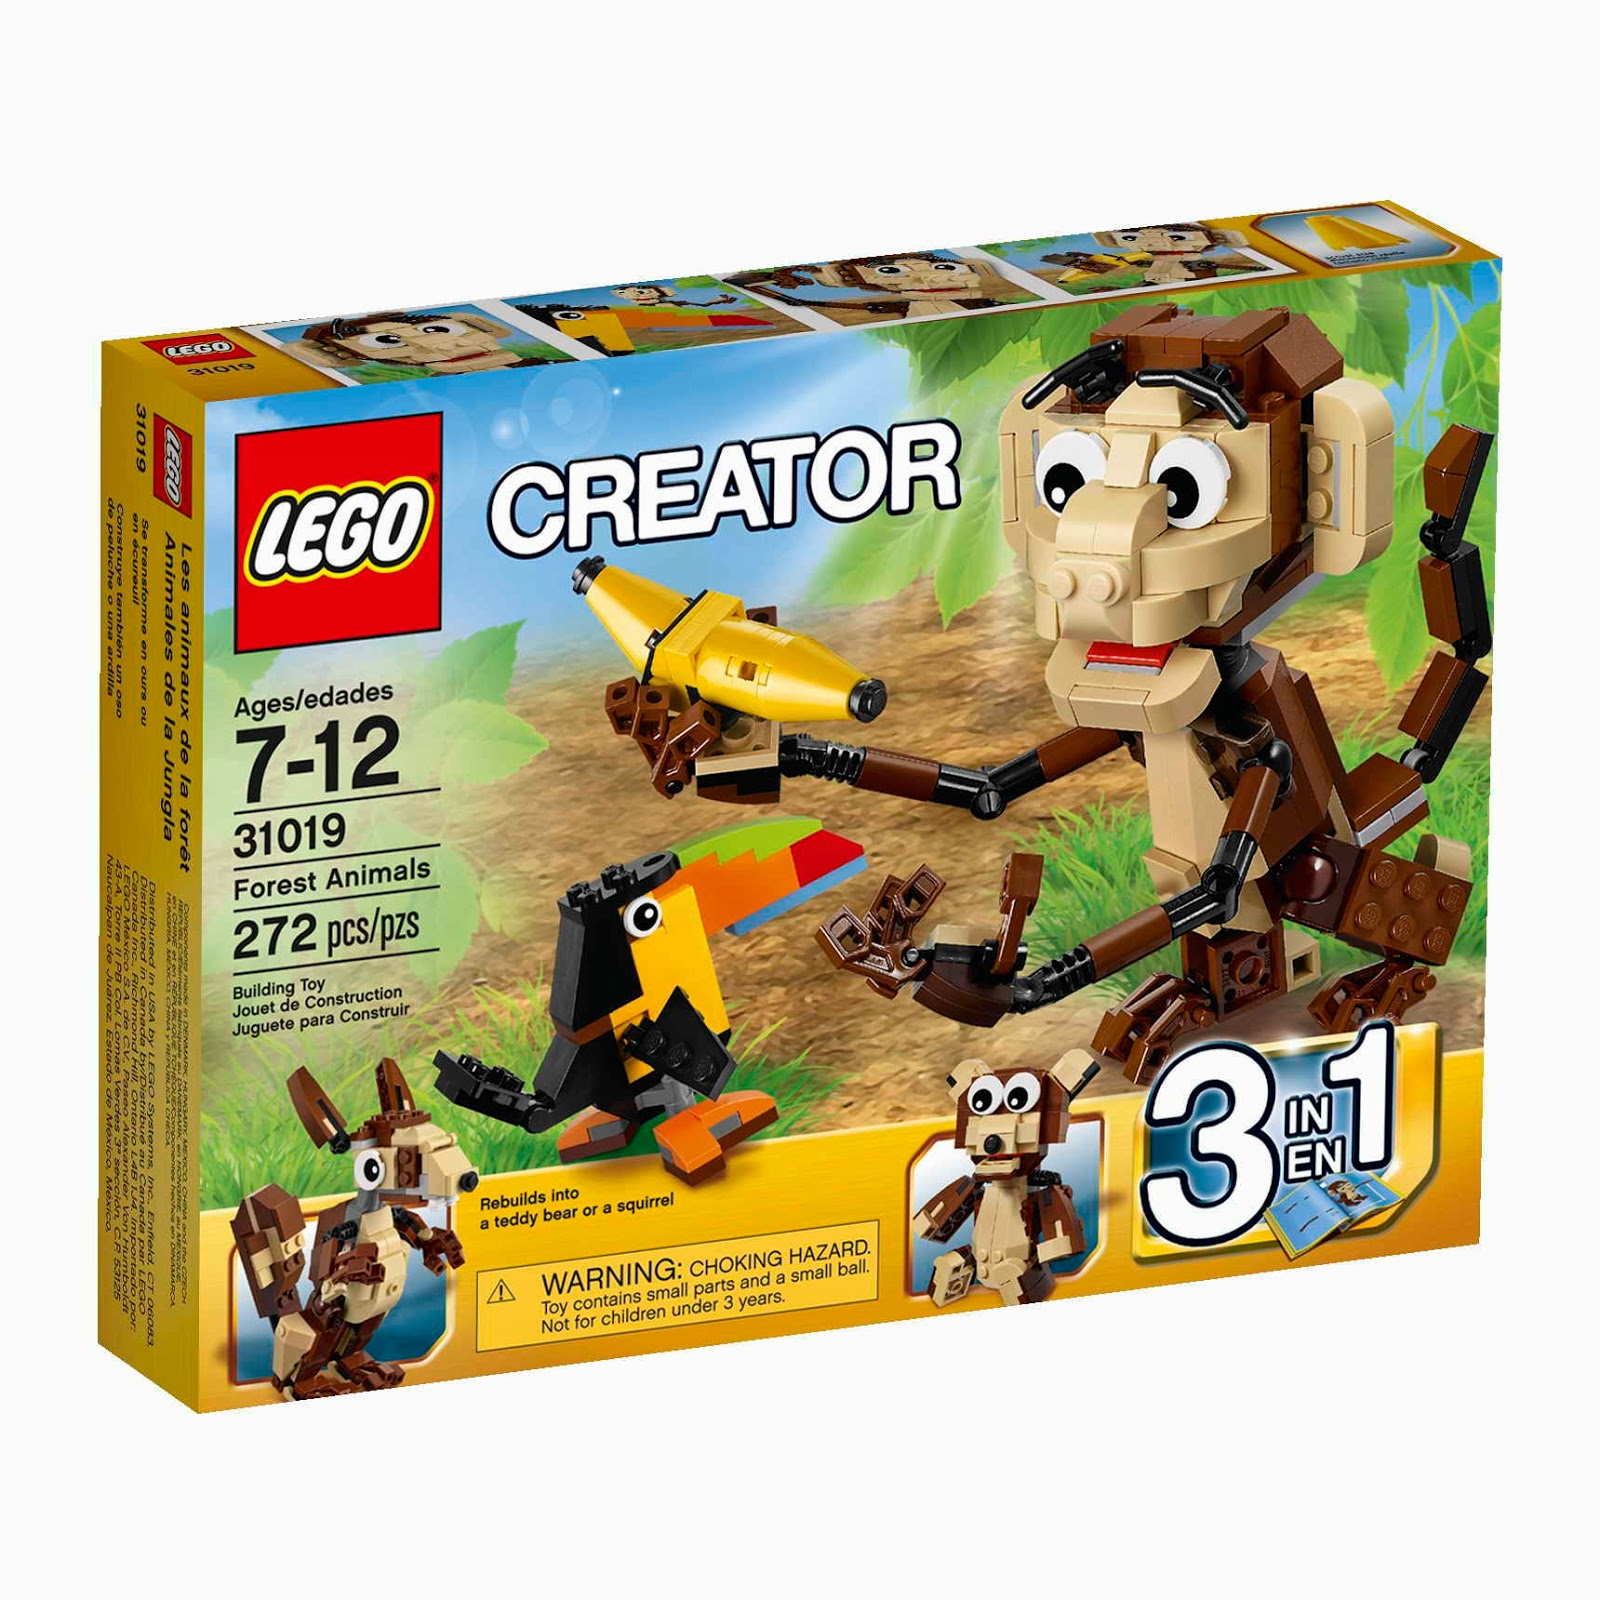 LEGO LEGO Legends of Chima Erasers 4-Pack Walmart $ LEGO. LEGO LEGO Legends of Chima Longtooth's Loose Torso & Legs $ at Walmart. Comes as pictured. See at Walmart. CONNEXITY. LEGO LEGO LEGO Legends of Chima Longtooth's Loose Torso & Legs Walmart $ shop more LEGO Toys.